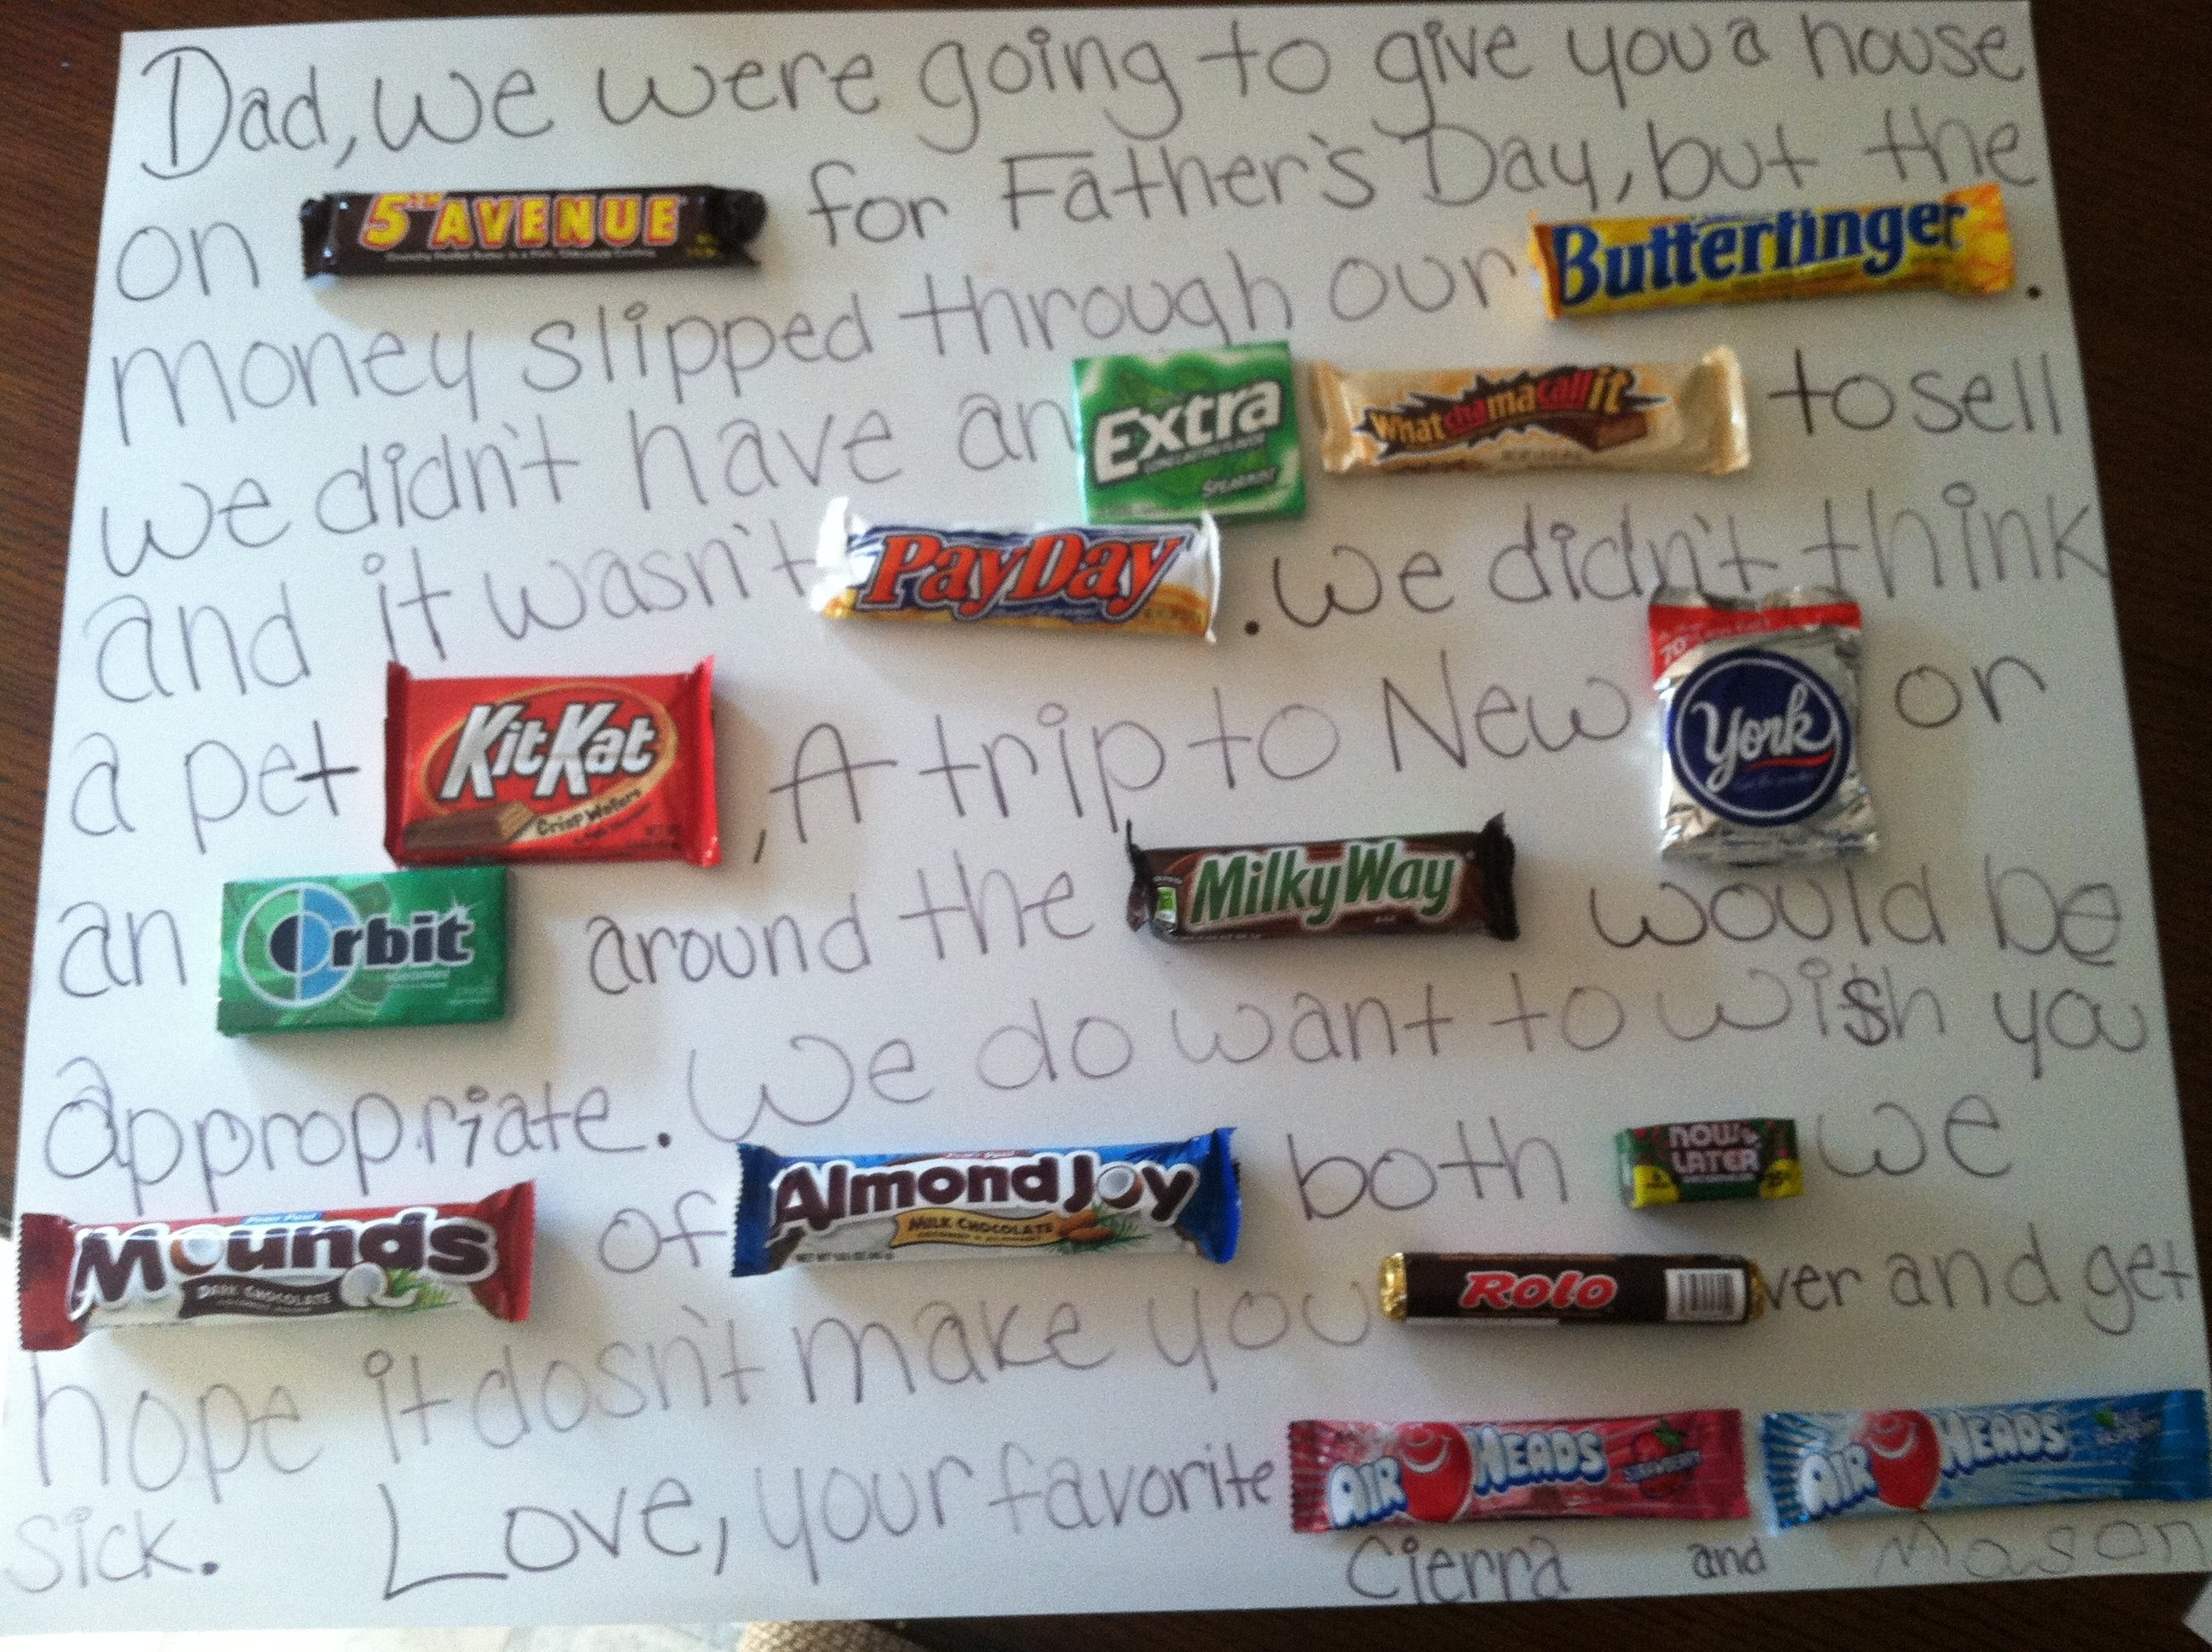 10 Attractive Gift Ideas For Dad For Christmas wemadeitgjcm gift for dad made it and ate it pinterest dads 13 2020